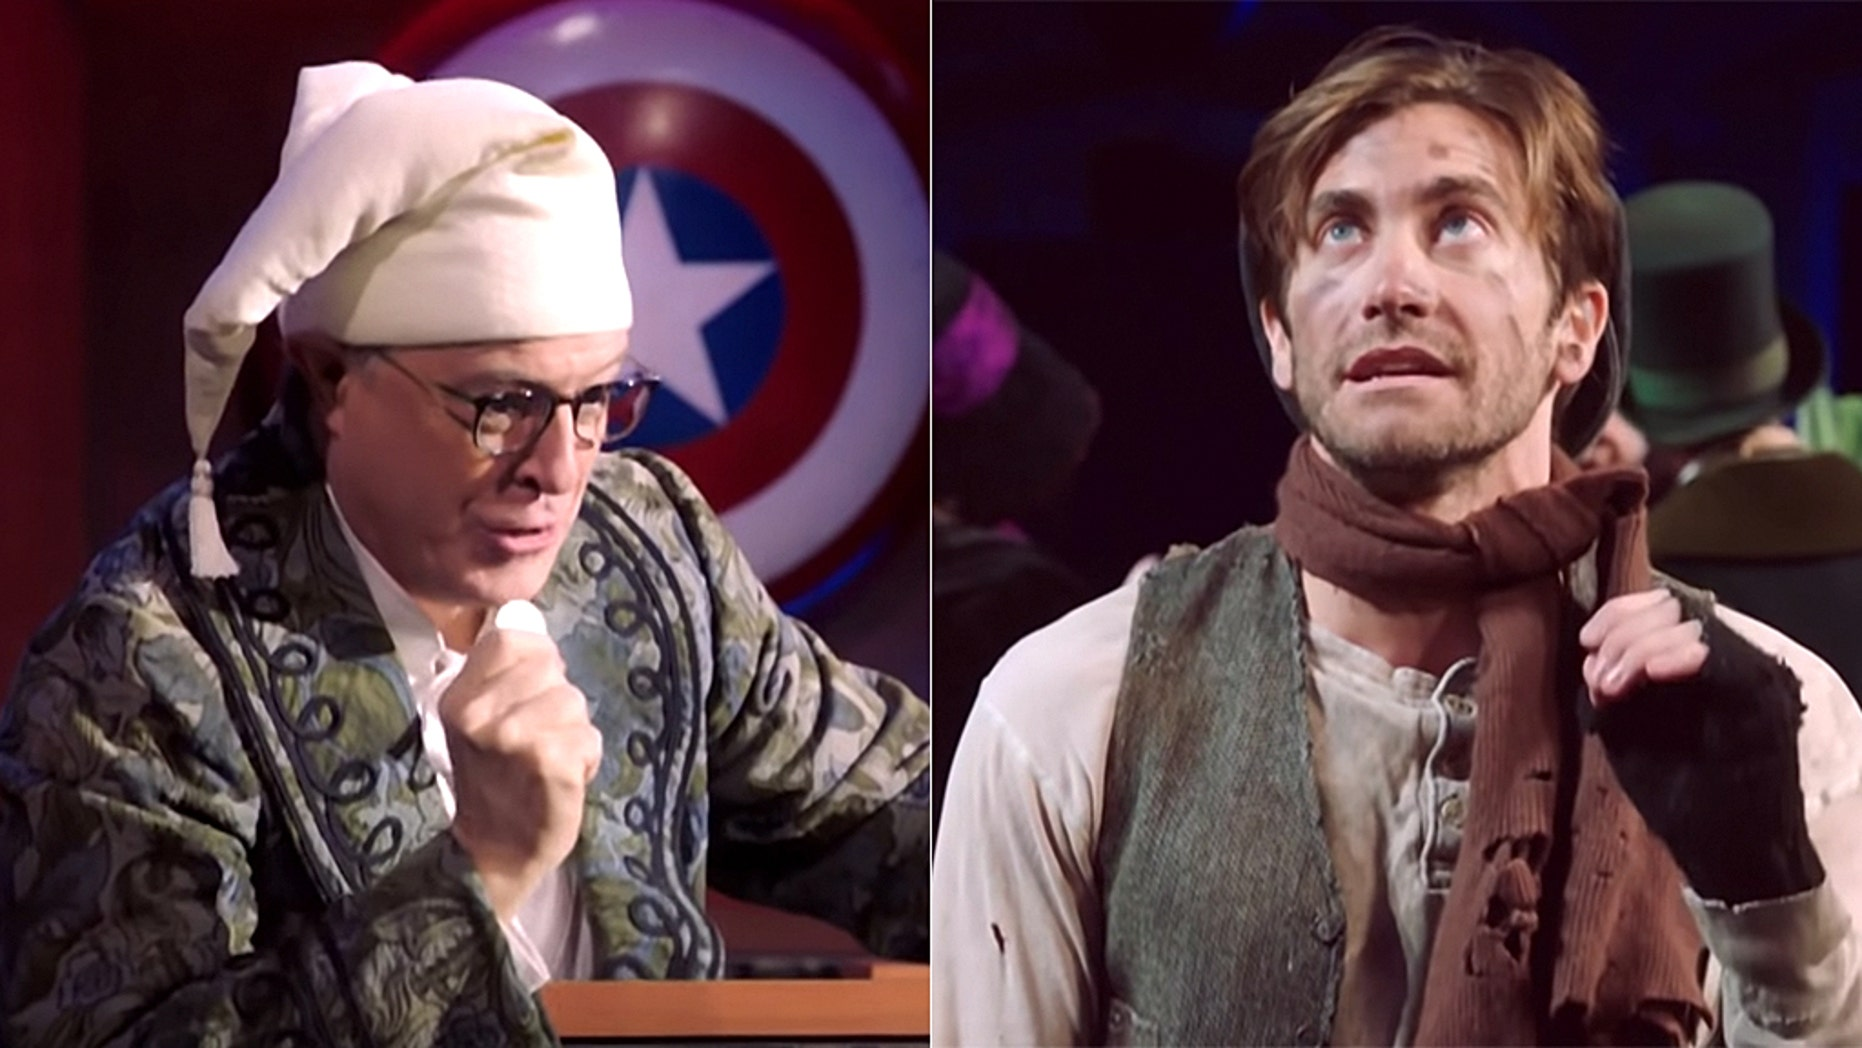 """The Late Show"" host Stephen Colbert did an Election Day skit starring Jake Gyllenhaal."